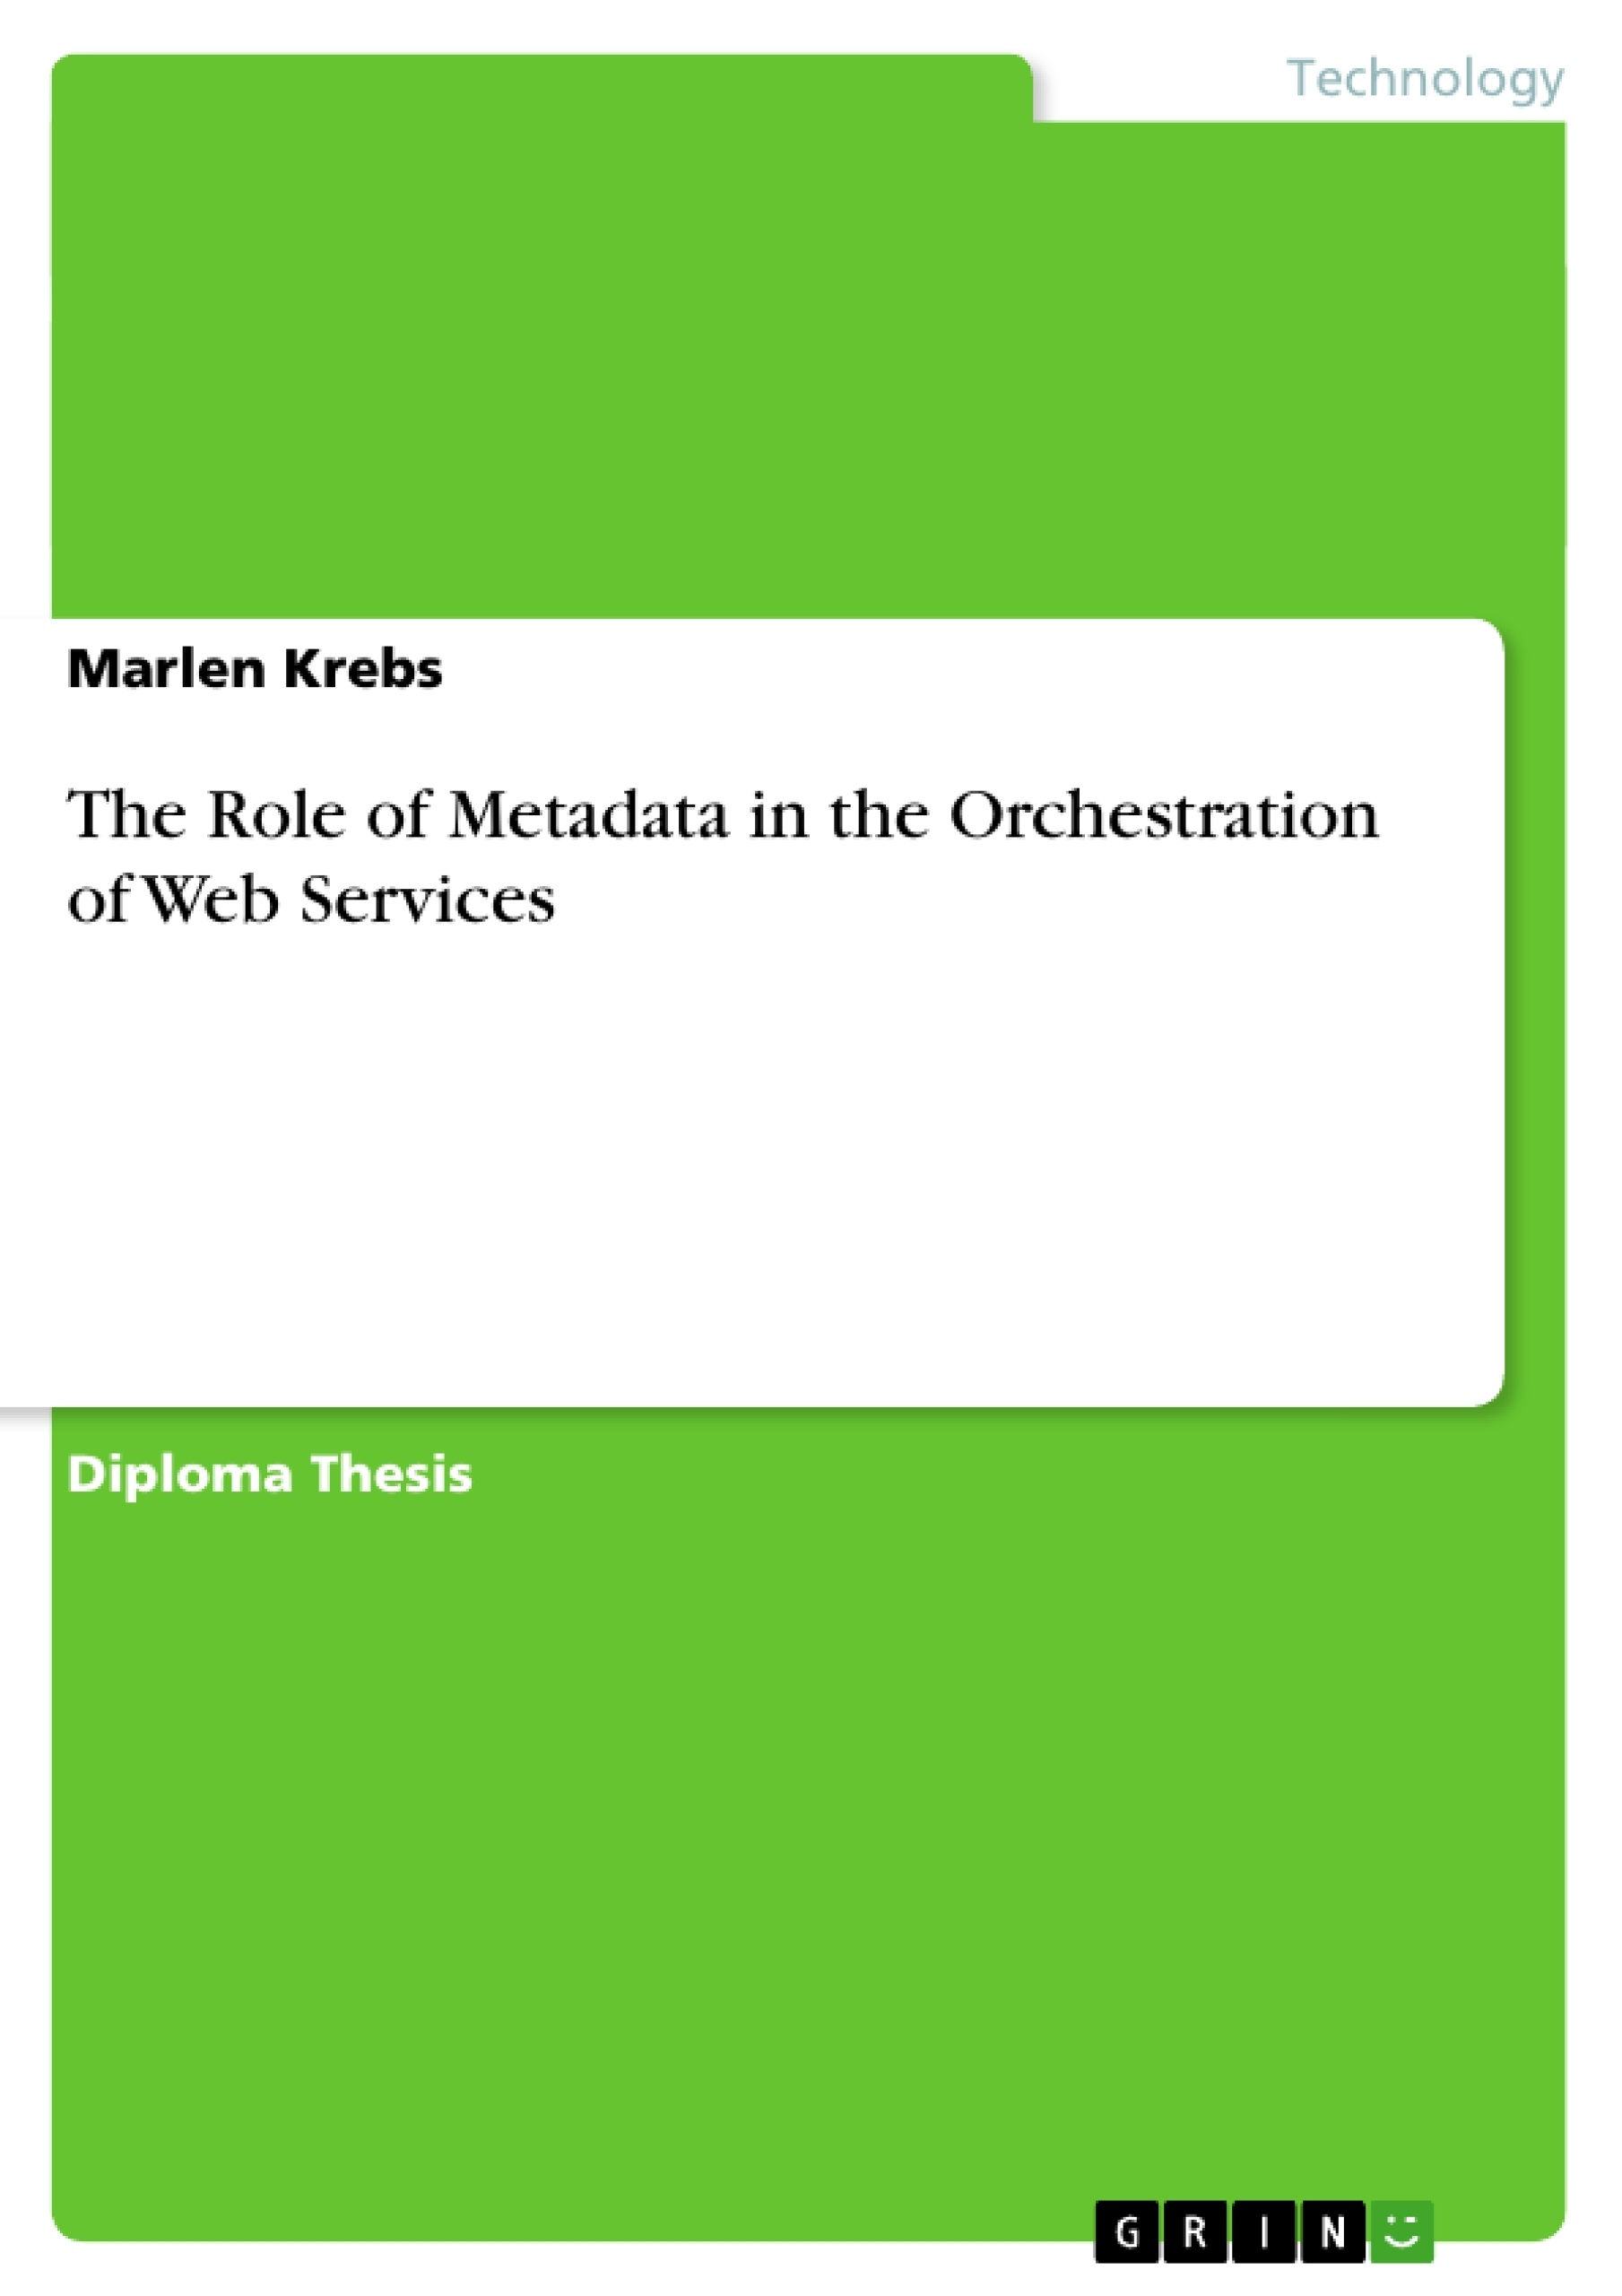 thesis about web services